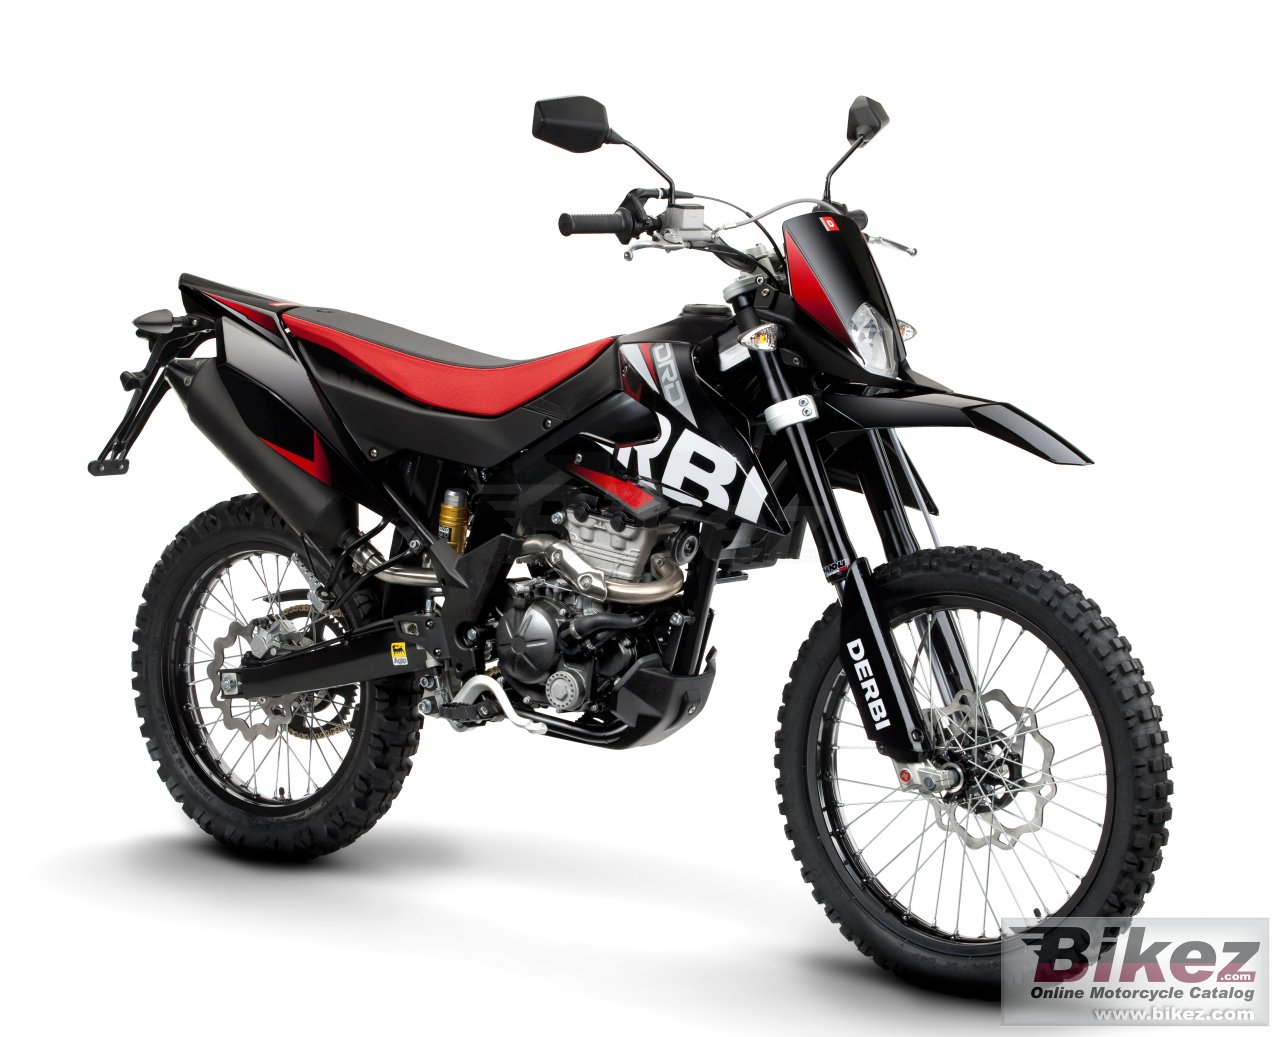 Big Derbi senda drd 125 r picture and wallpaper from Bikez.com